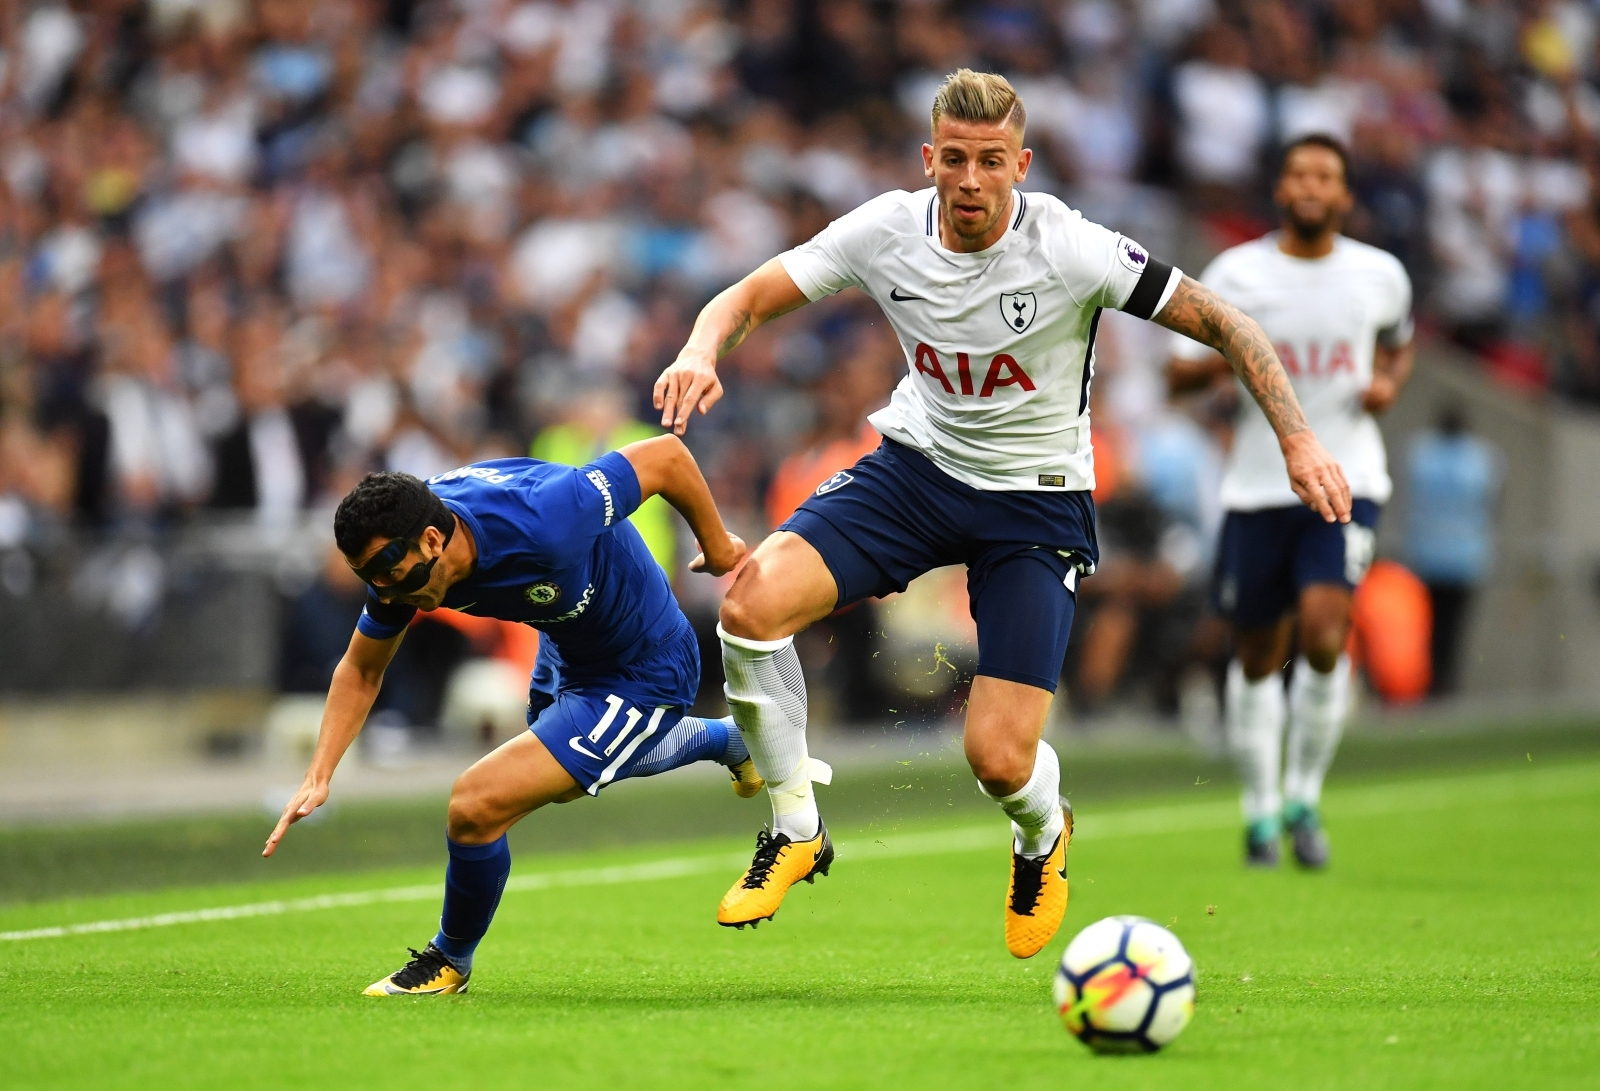 Man City interested in Tottenham's Toby Alderweireld